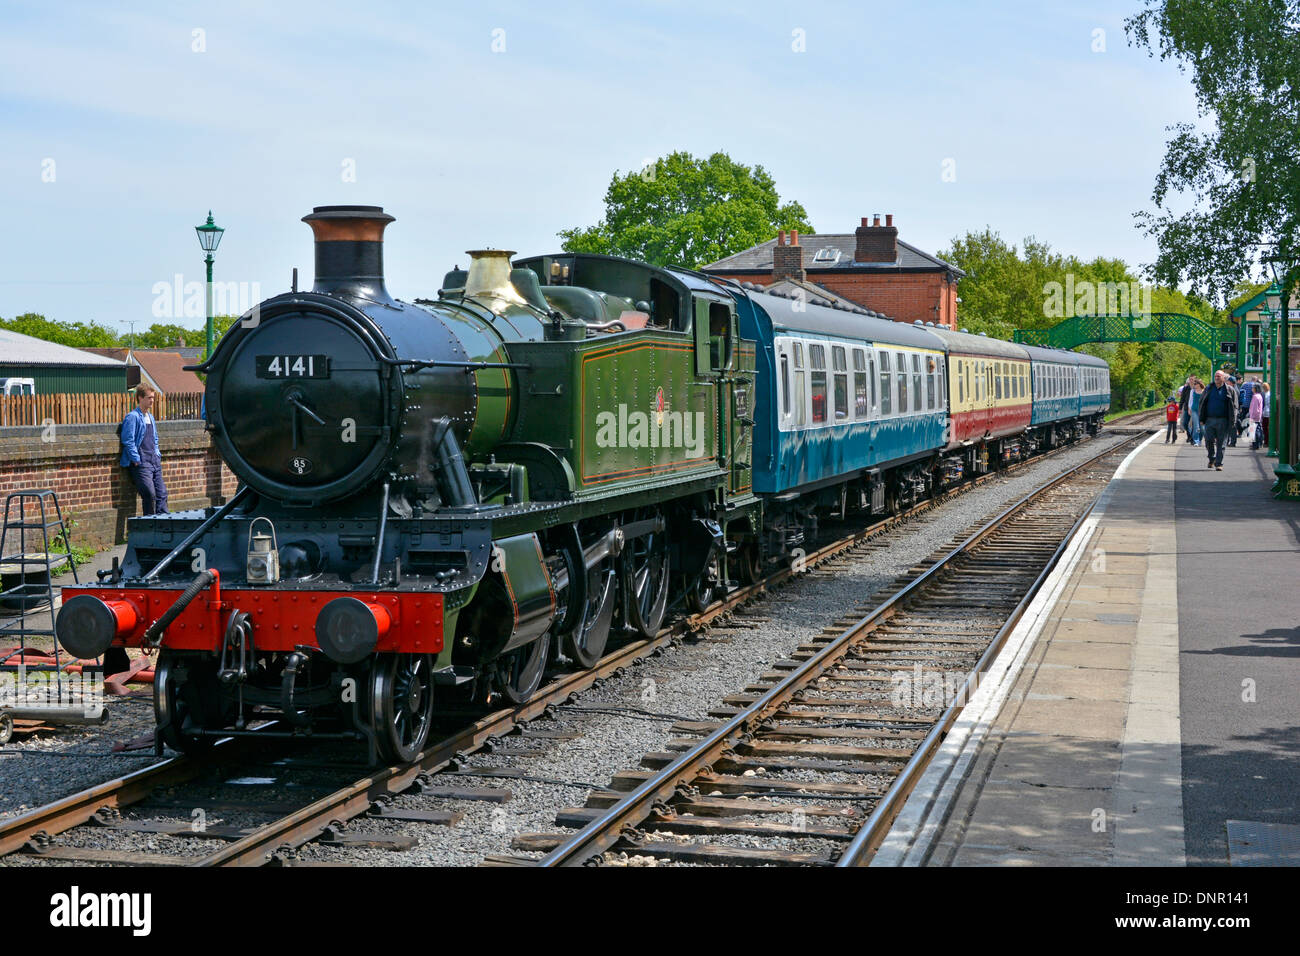 steam-locomotive-4141-with-train-on-the-